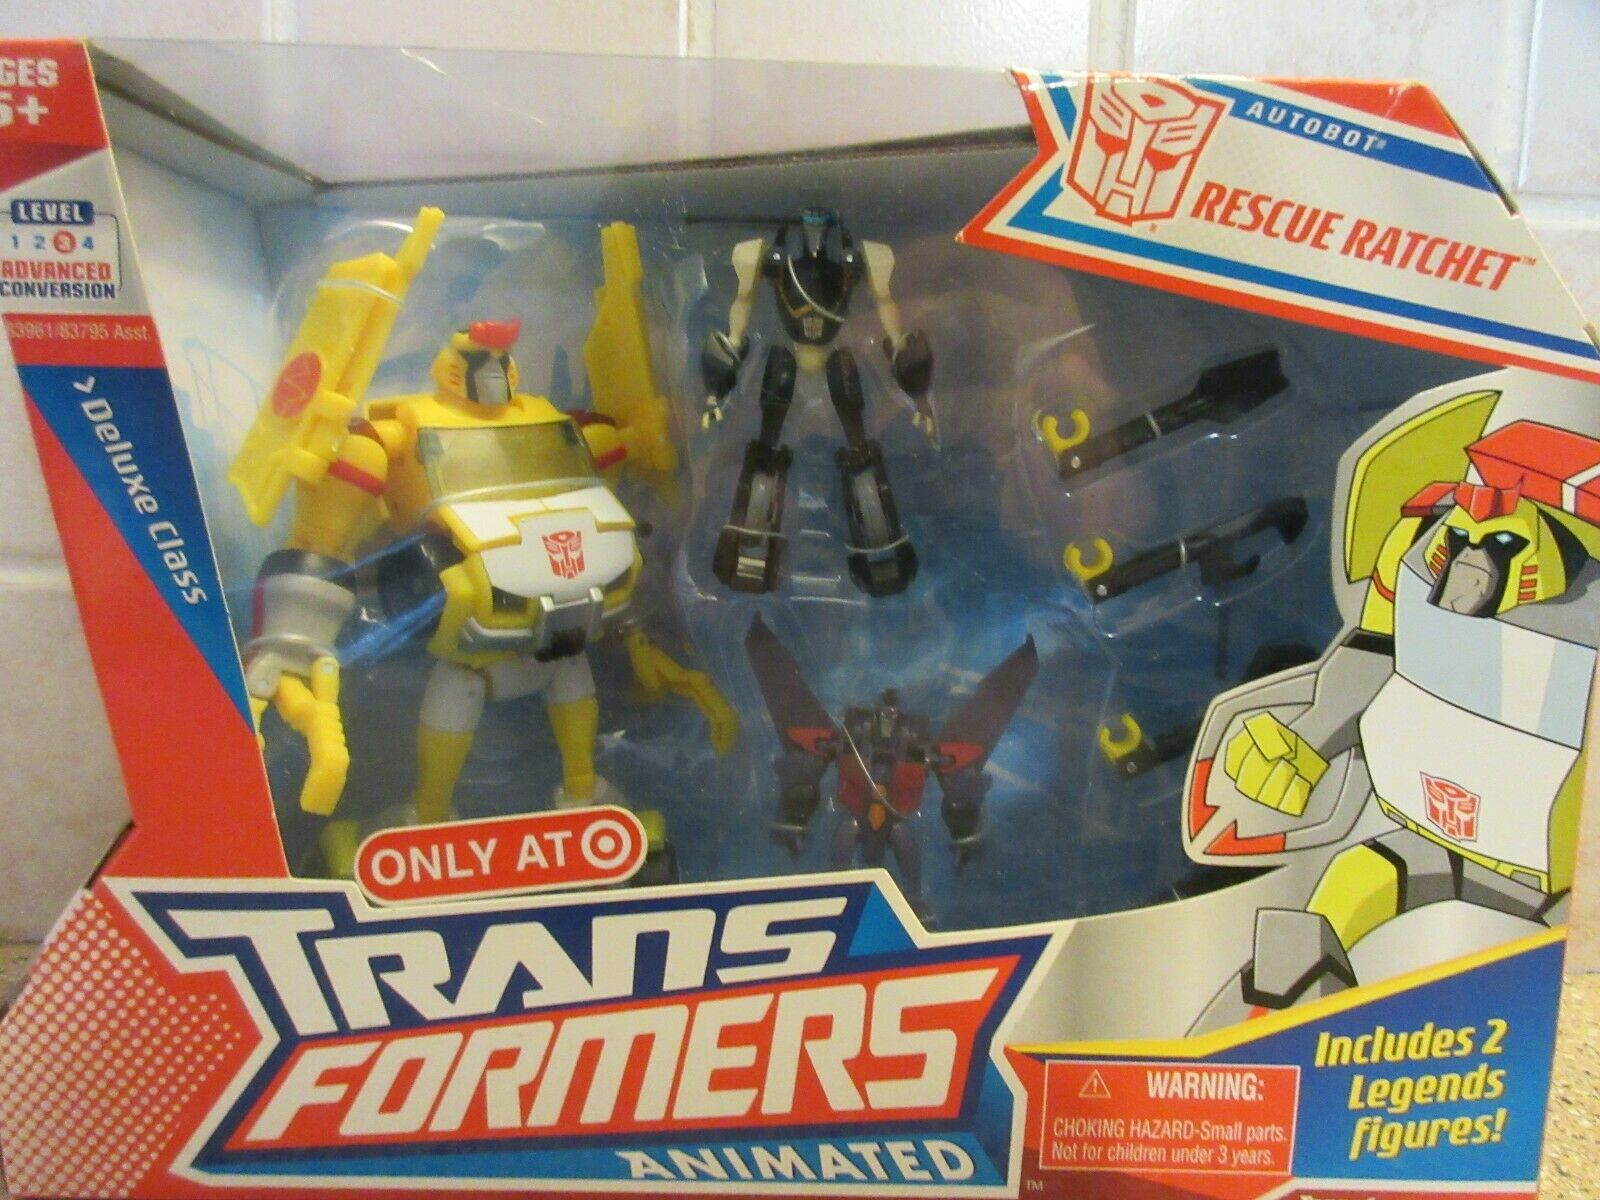 2008 Transformers Animated Autobot Rescue Ratchet Deluxe Class HTF   NIB